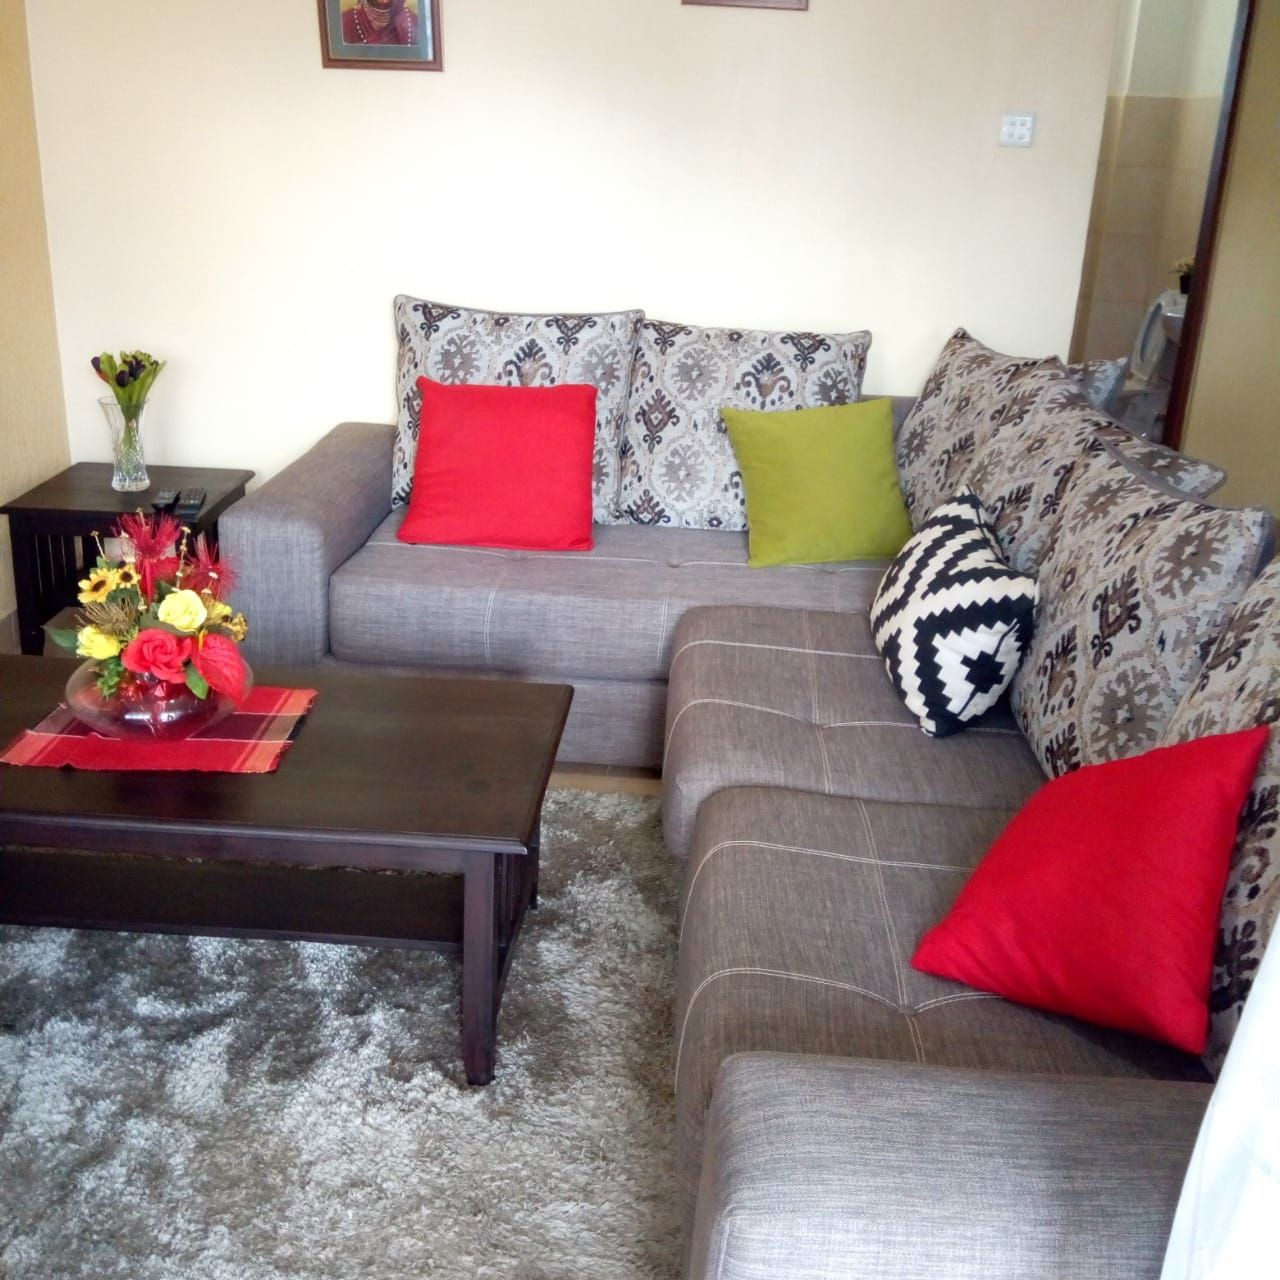 1 Bedroom Fully Furnished Apartment At Th E Heart Of Nairobi Westlands School Lane At Ksh 80 000 Fully Furnished Apartments Furnished Apartment Furnishings